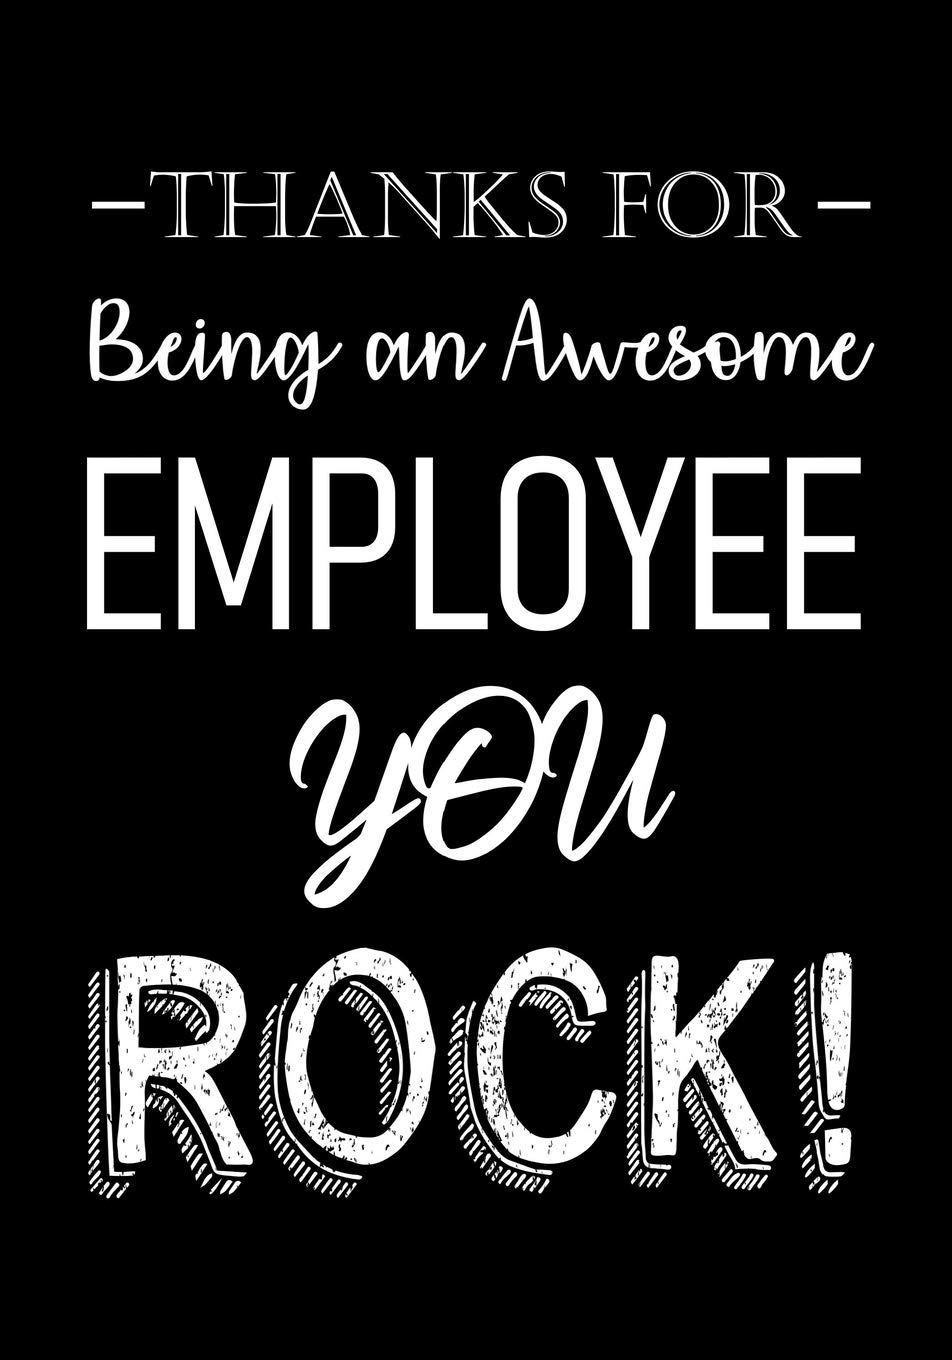 Thanks For Being An Awesome Employee You Rock Appreciation Gifts For Employees Thank You Gift For Employee Recognition Lined Journal Notebook Alternative To Cards Studio Creative Gifts 9781701043756 Books Amazon Ca